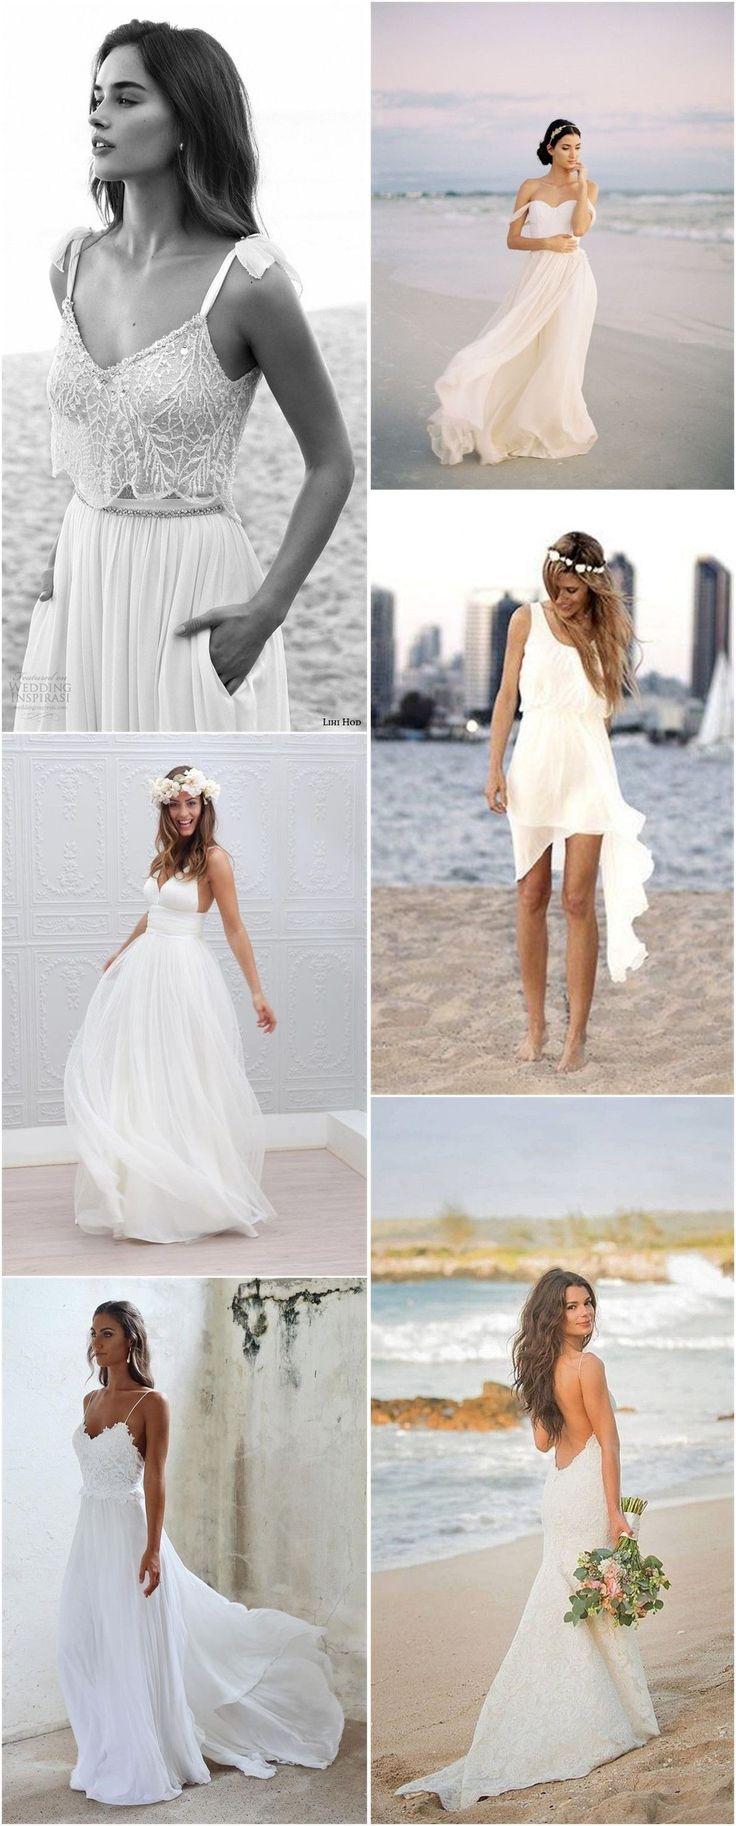 Beach Wedding Dresses » Top 22 Beach Wedding Dresses Ideas to Stand You out » ❤️ See more: http://www.weddinginclude.com/2017/04/top-beach-wedding-dresses-ideas-to-stand-you-out/ #weddingdressideas